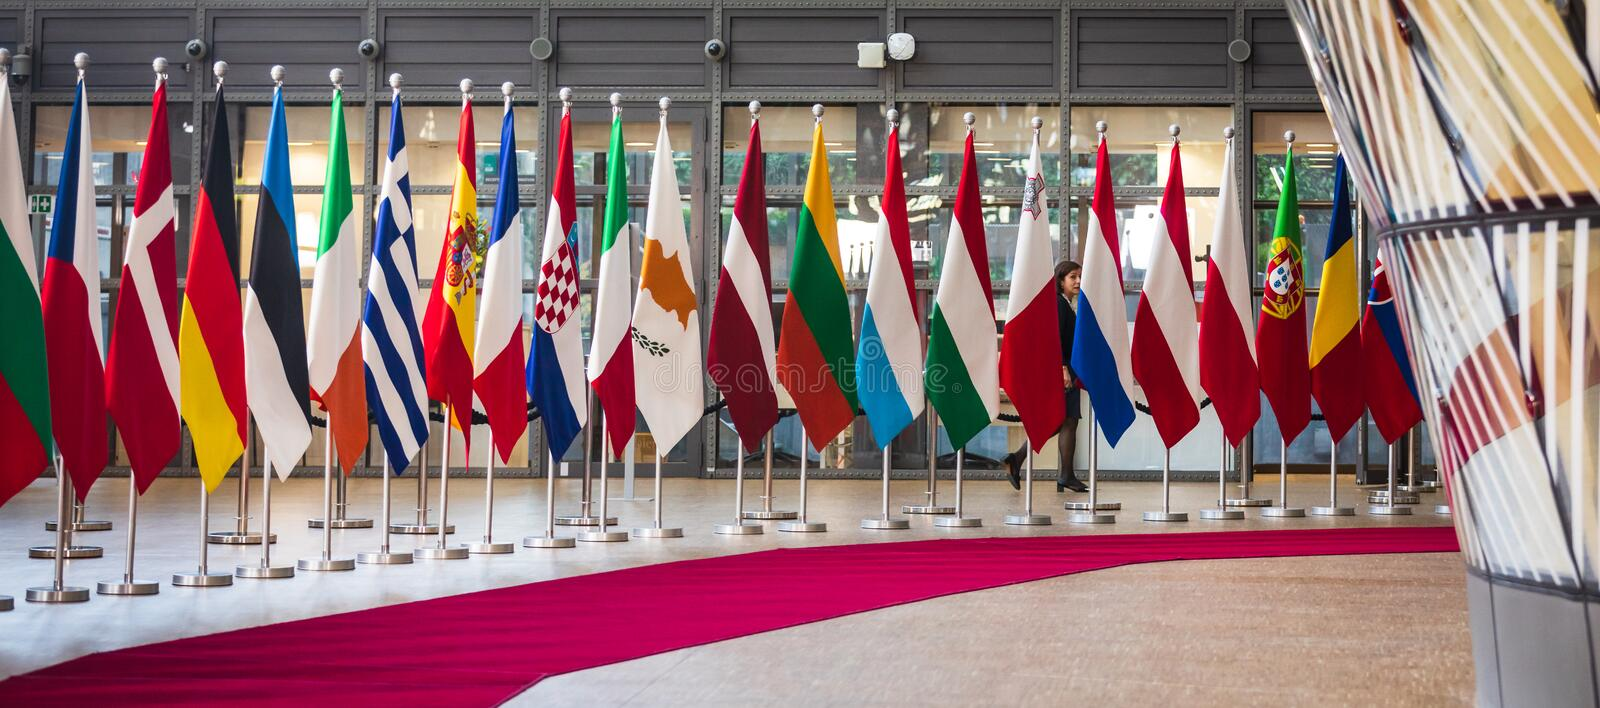 Meeting of EU leaders at the EU headquarters. BRUSSELS, BELGIUM - May 13, 2019: Flags on the meeting of EU leaders at the EU headquarters. High Level Conference royalty free stock images